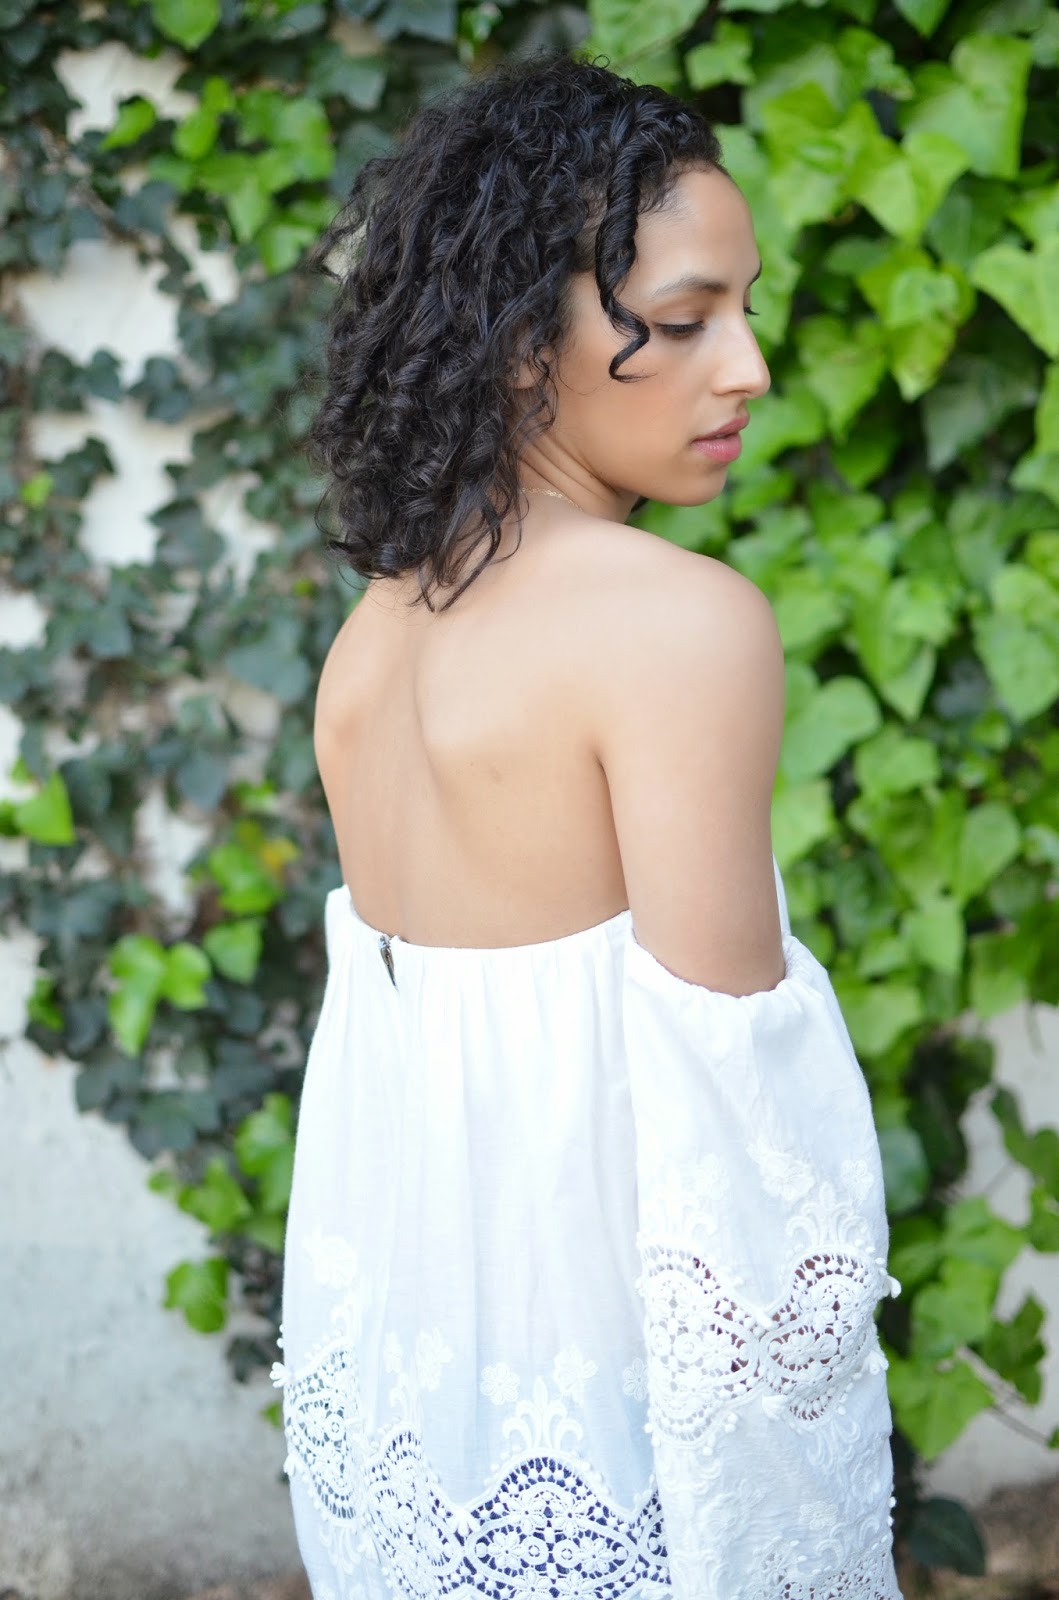 stone cold fox marrakech dress, stone cold fox, revolve clothing, short curly hair,SF street style, short curly hair